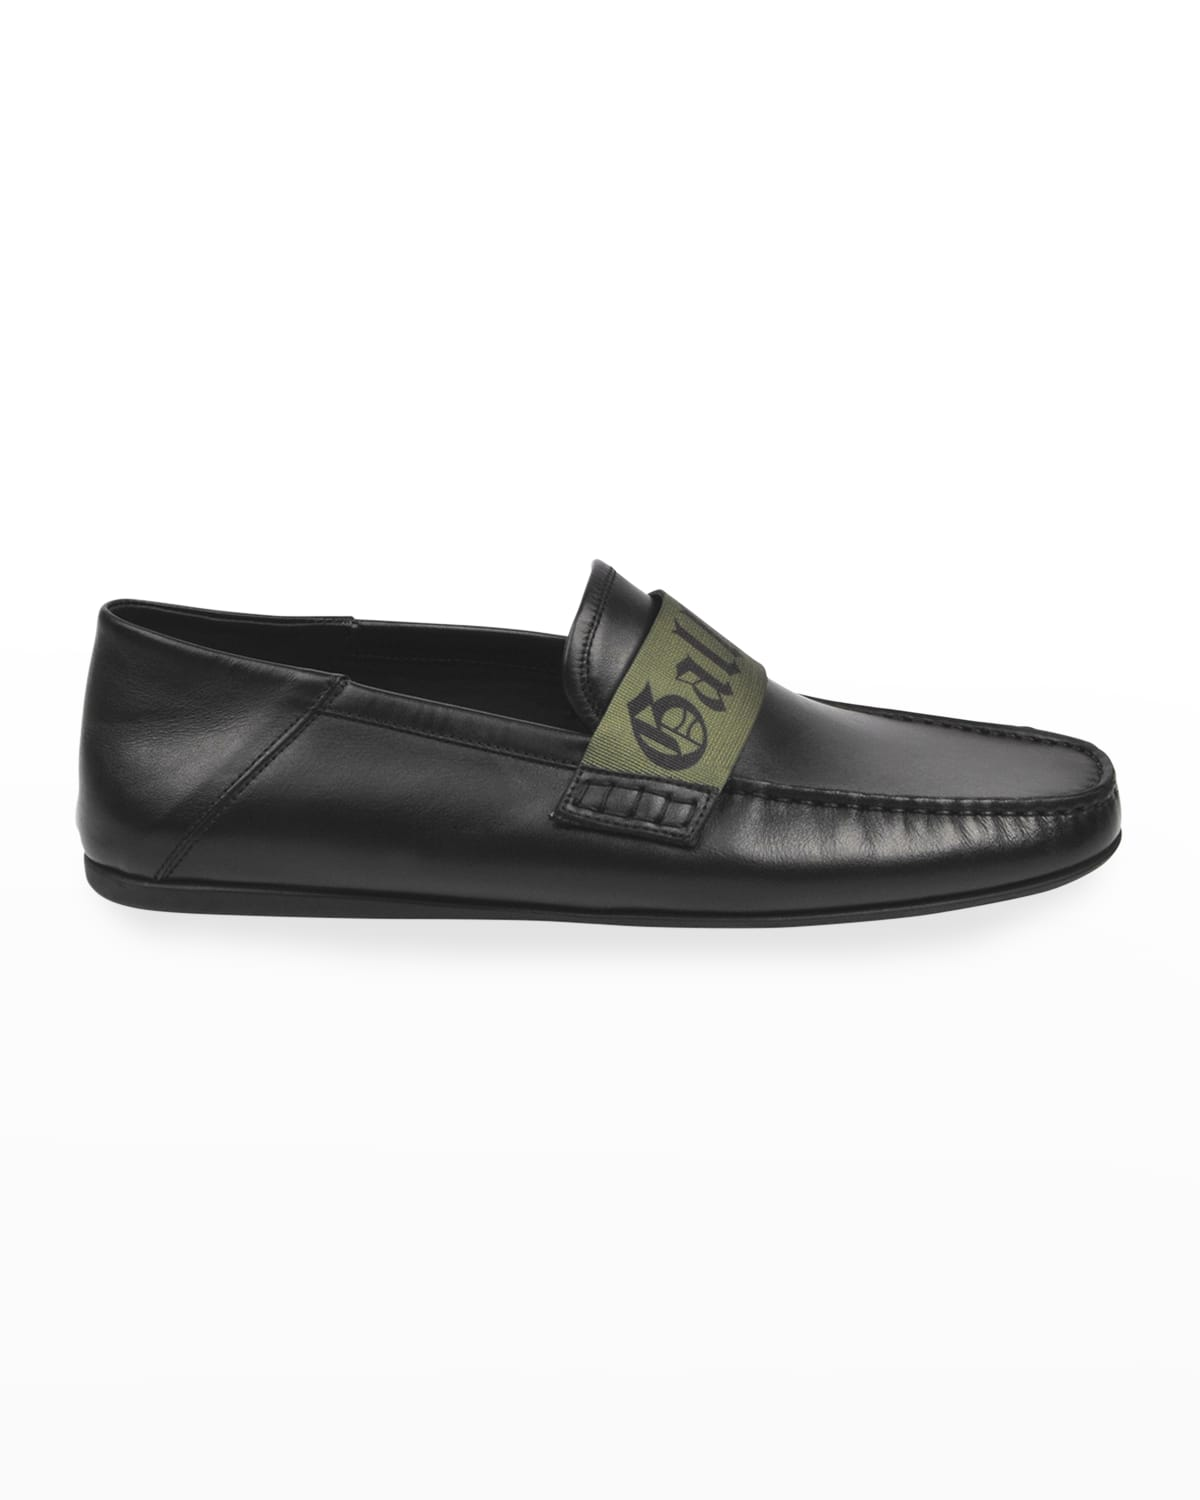 Men's Foldable Leather Drivers w/ Fabric Logo